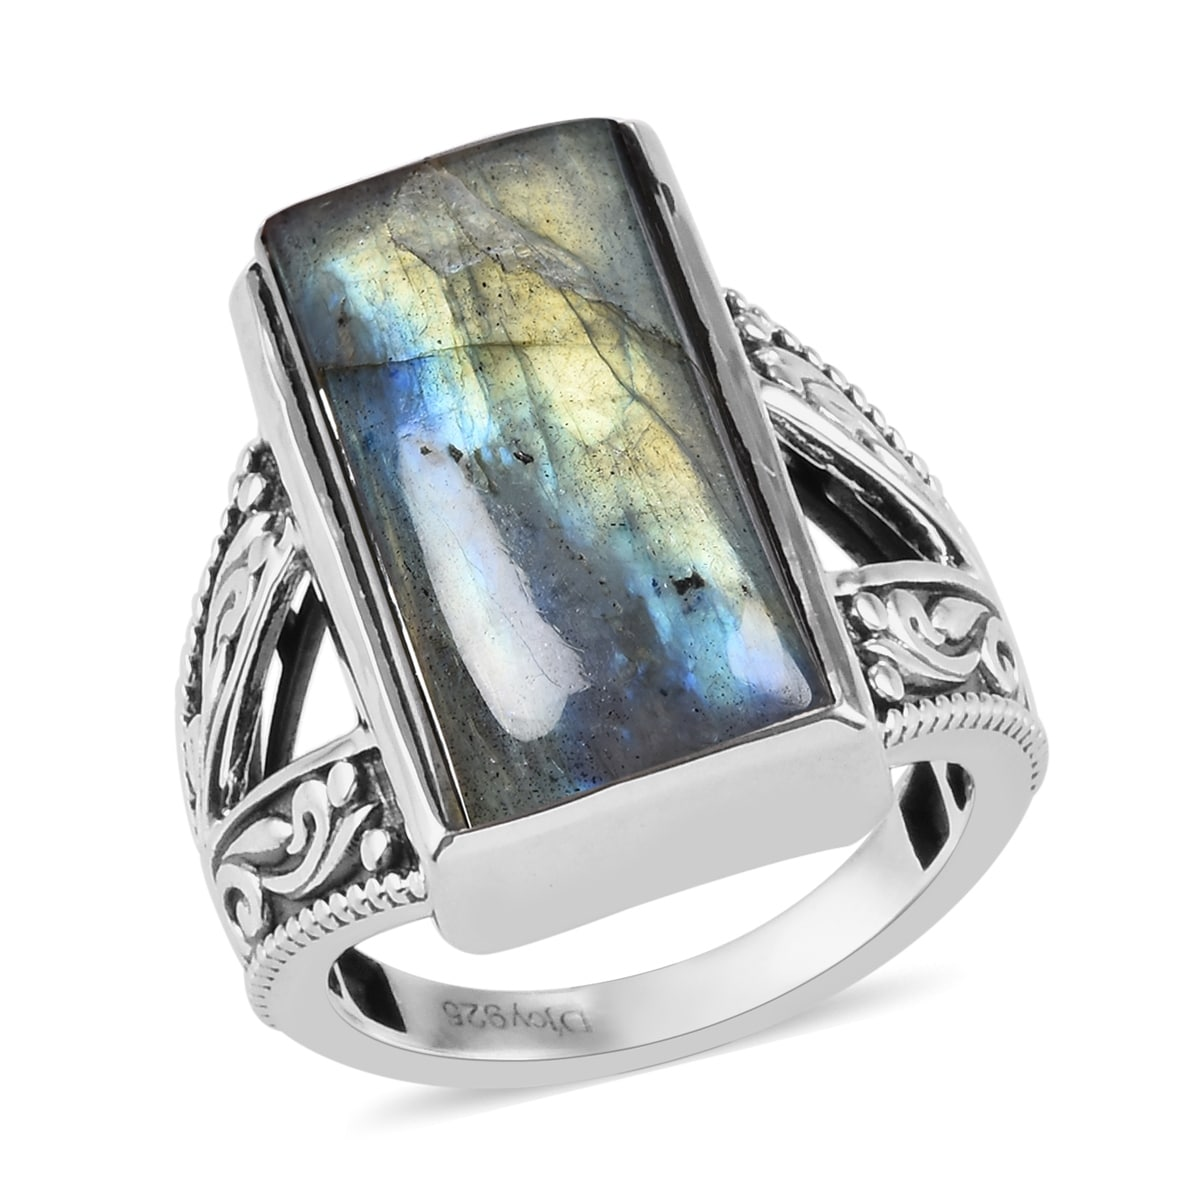 Sale low price Natural Labradorite solitaire Ring 925 Sterling silver stamped,engagementWedding ring All sizes.